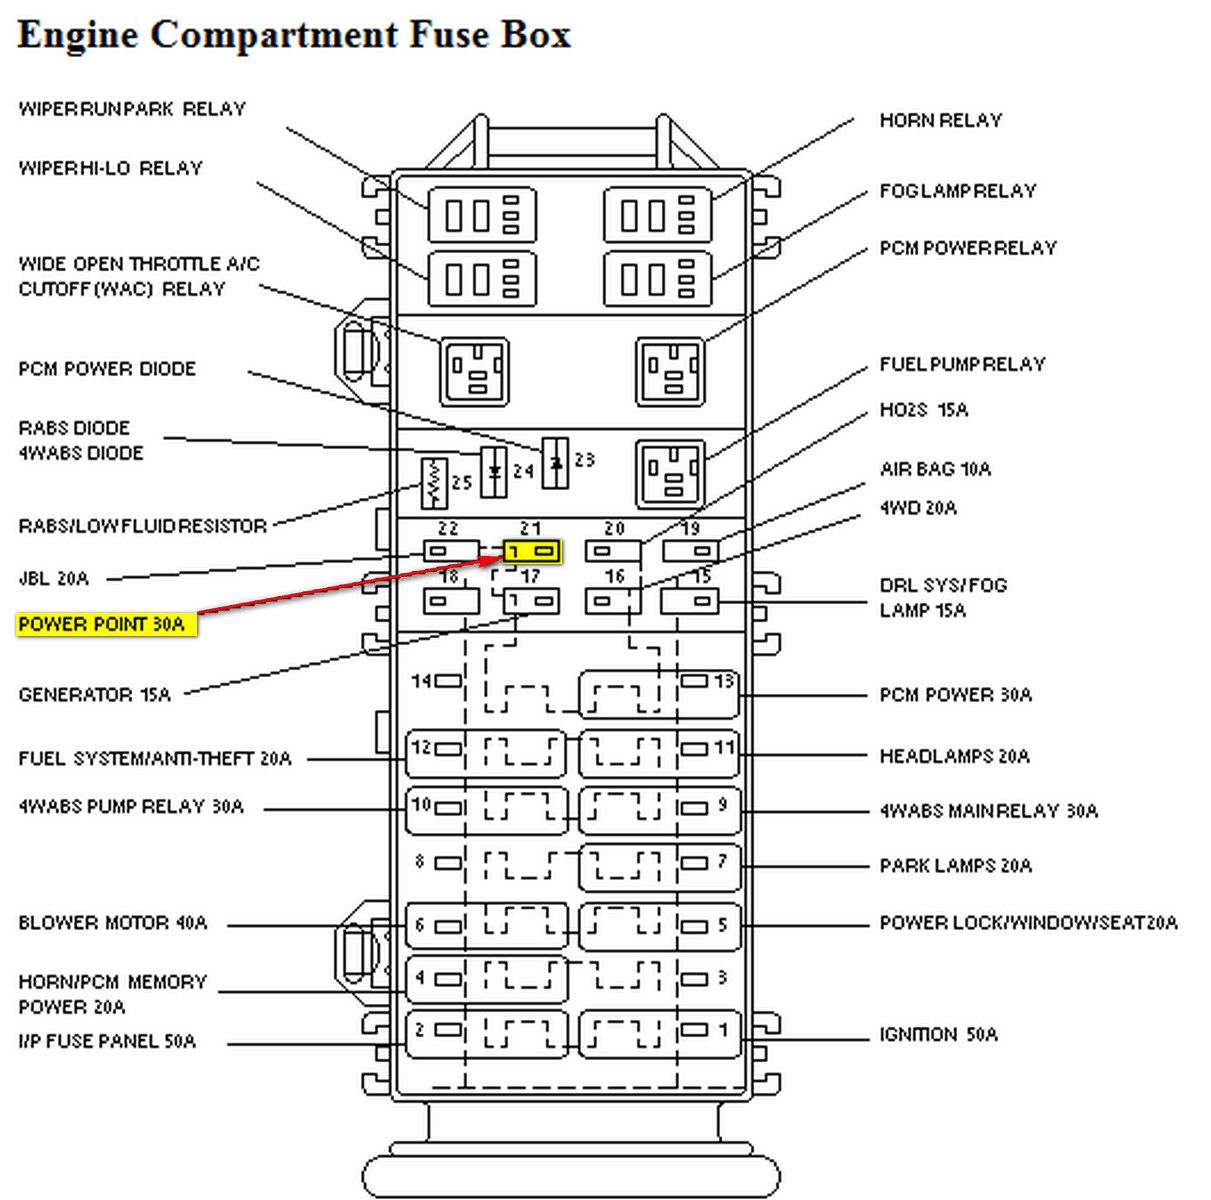 small resolution of 95 ford ranger fuse diagram wiring diagram note 1995 ranger fuse panel diagram